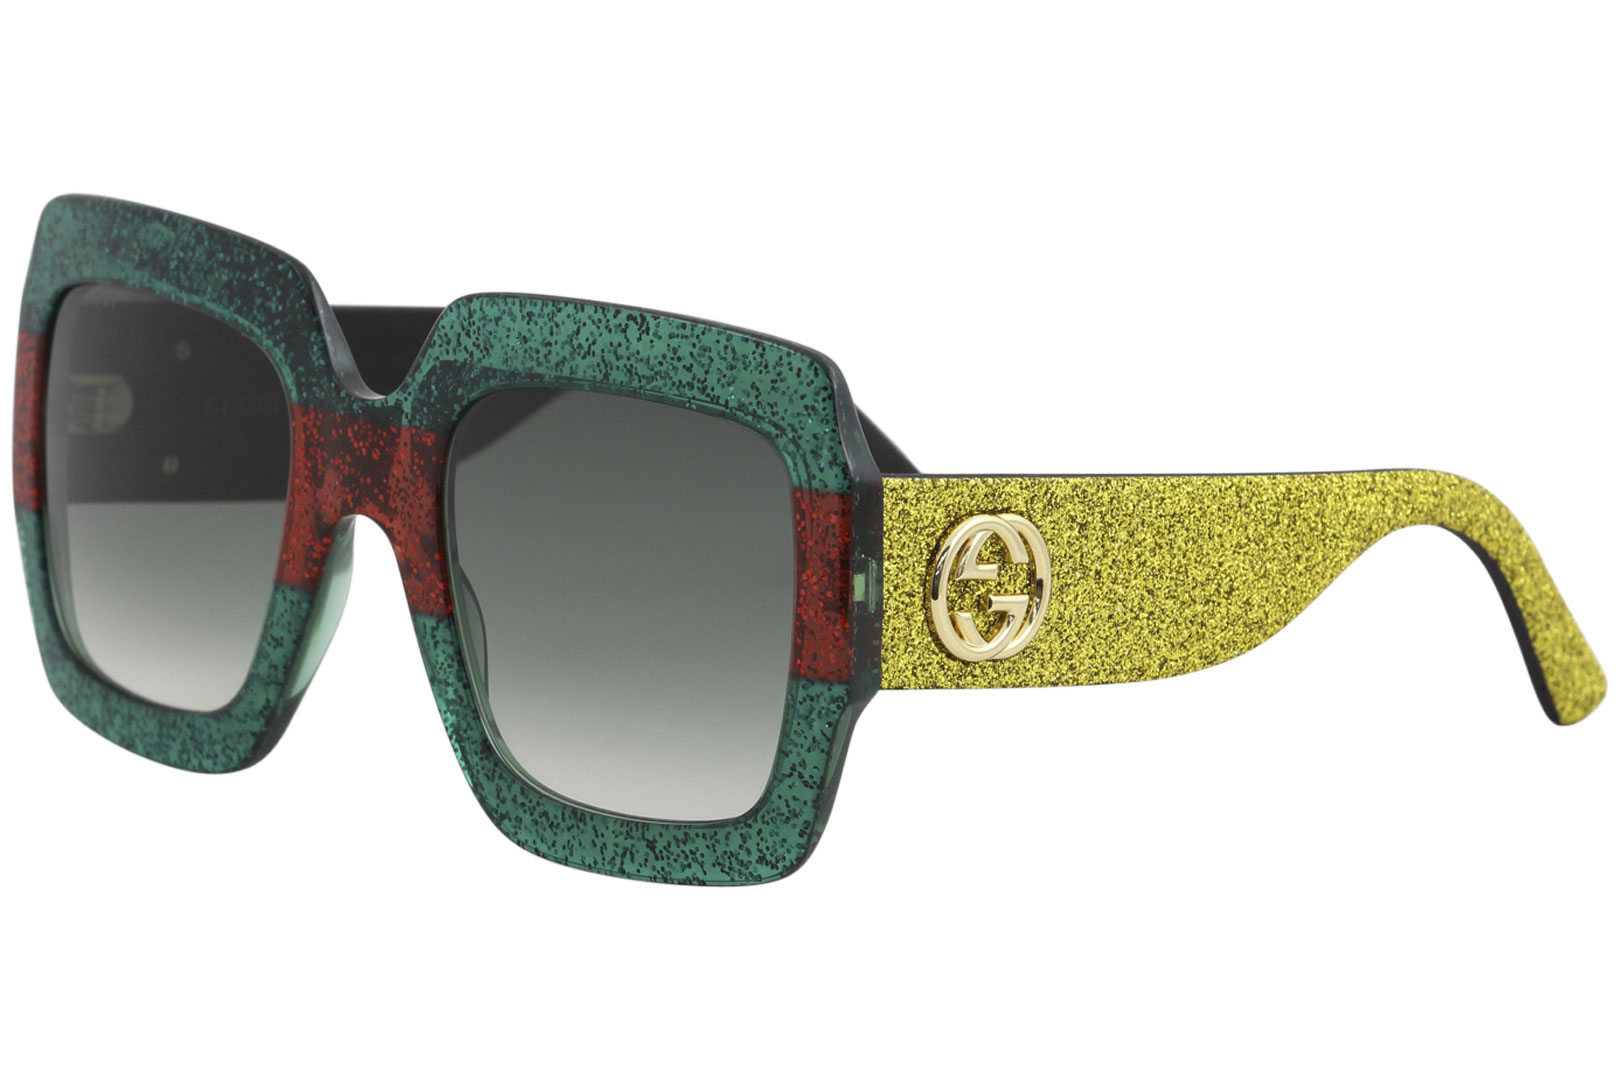 14a0ab19d4 Gucci Urban Collection GG0102S GG 0102 S 006 Green Red Glitter ...